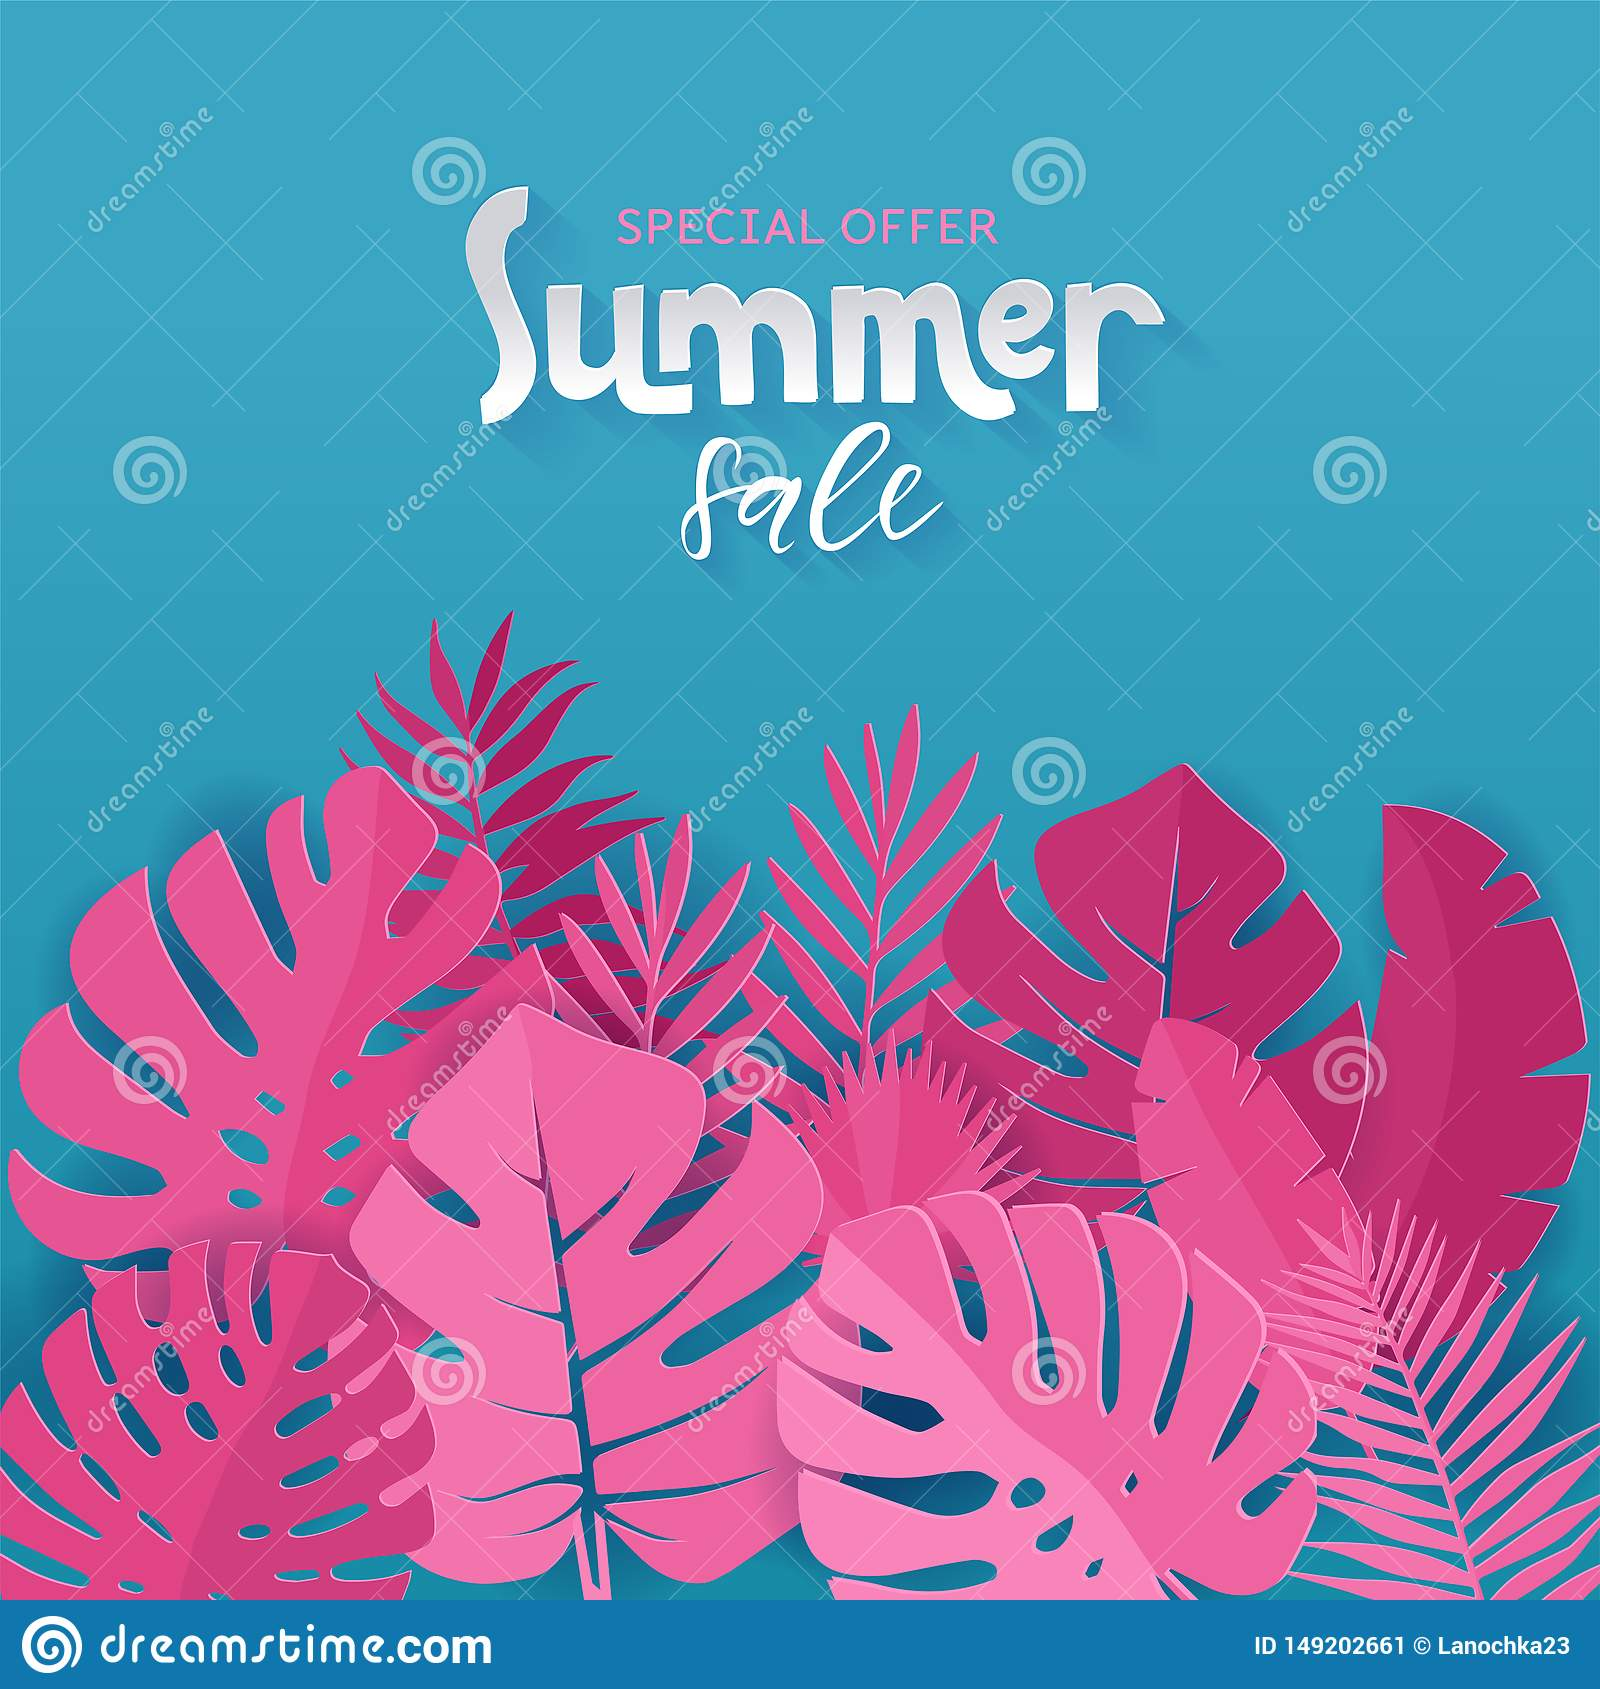 Square banner of Special offer Summer sale with pink palm, monstera, banana leaves on blue background with hand lettering. Paper